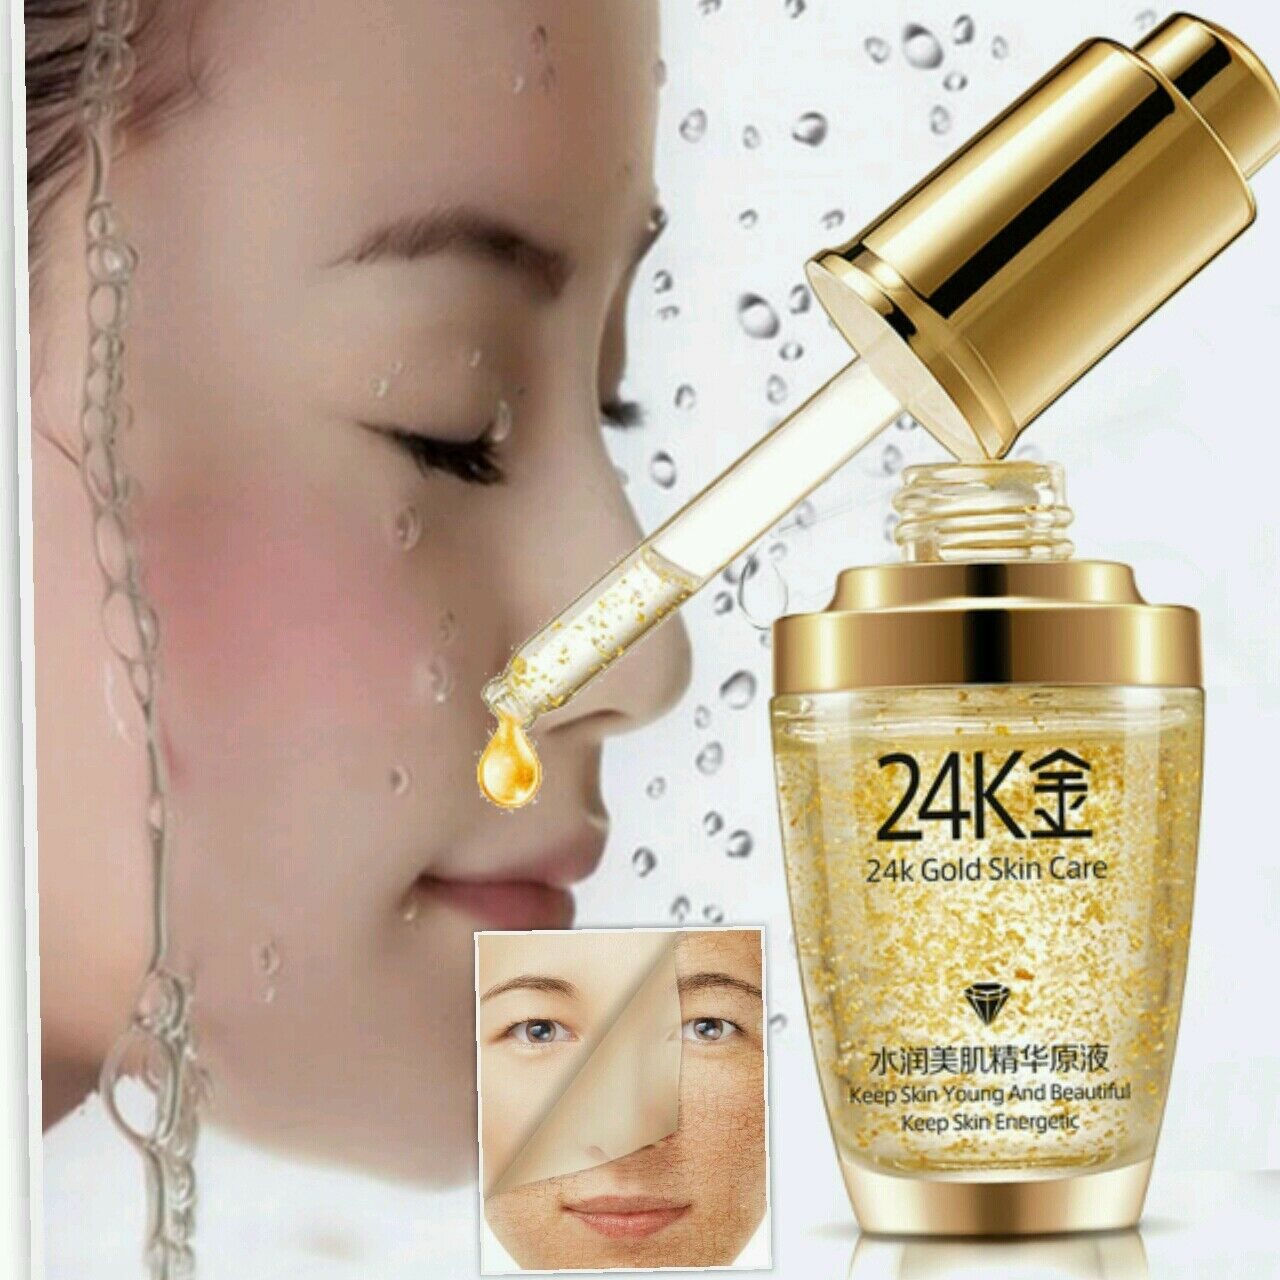 24k Gold Hyaluronic Acid The Best Anti Ageing Wrinkle Face Glowing Serum Bioaqua Essence 1 Von Siehe Mehr